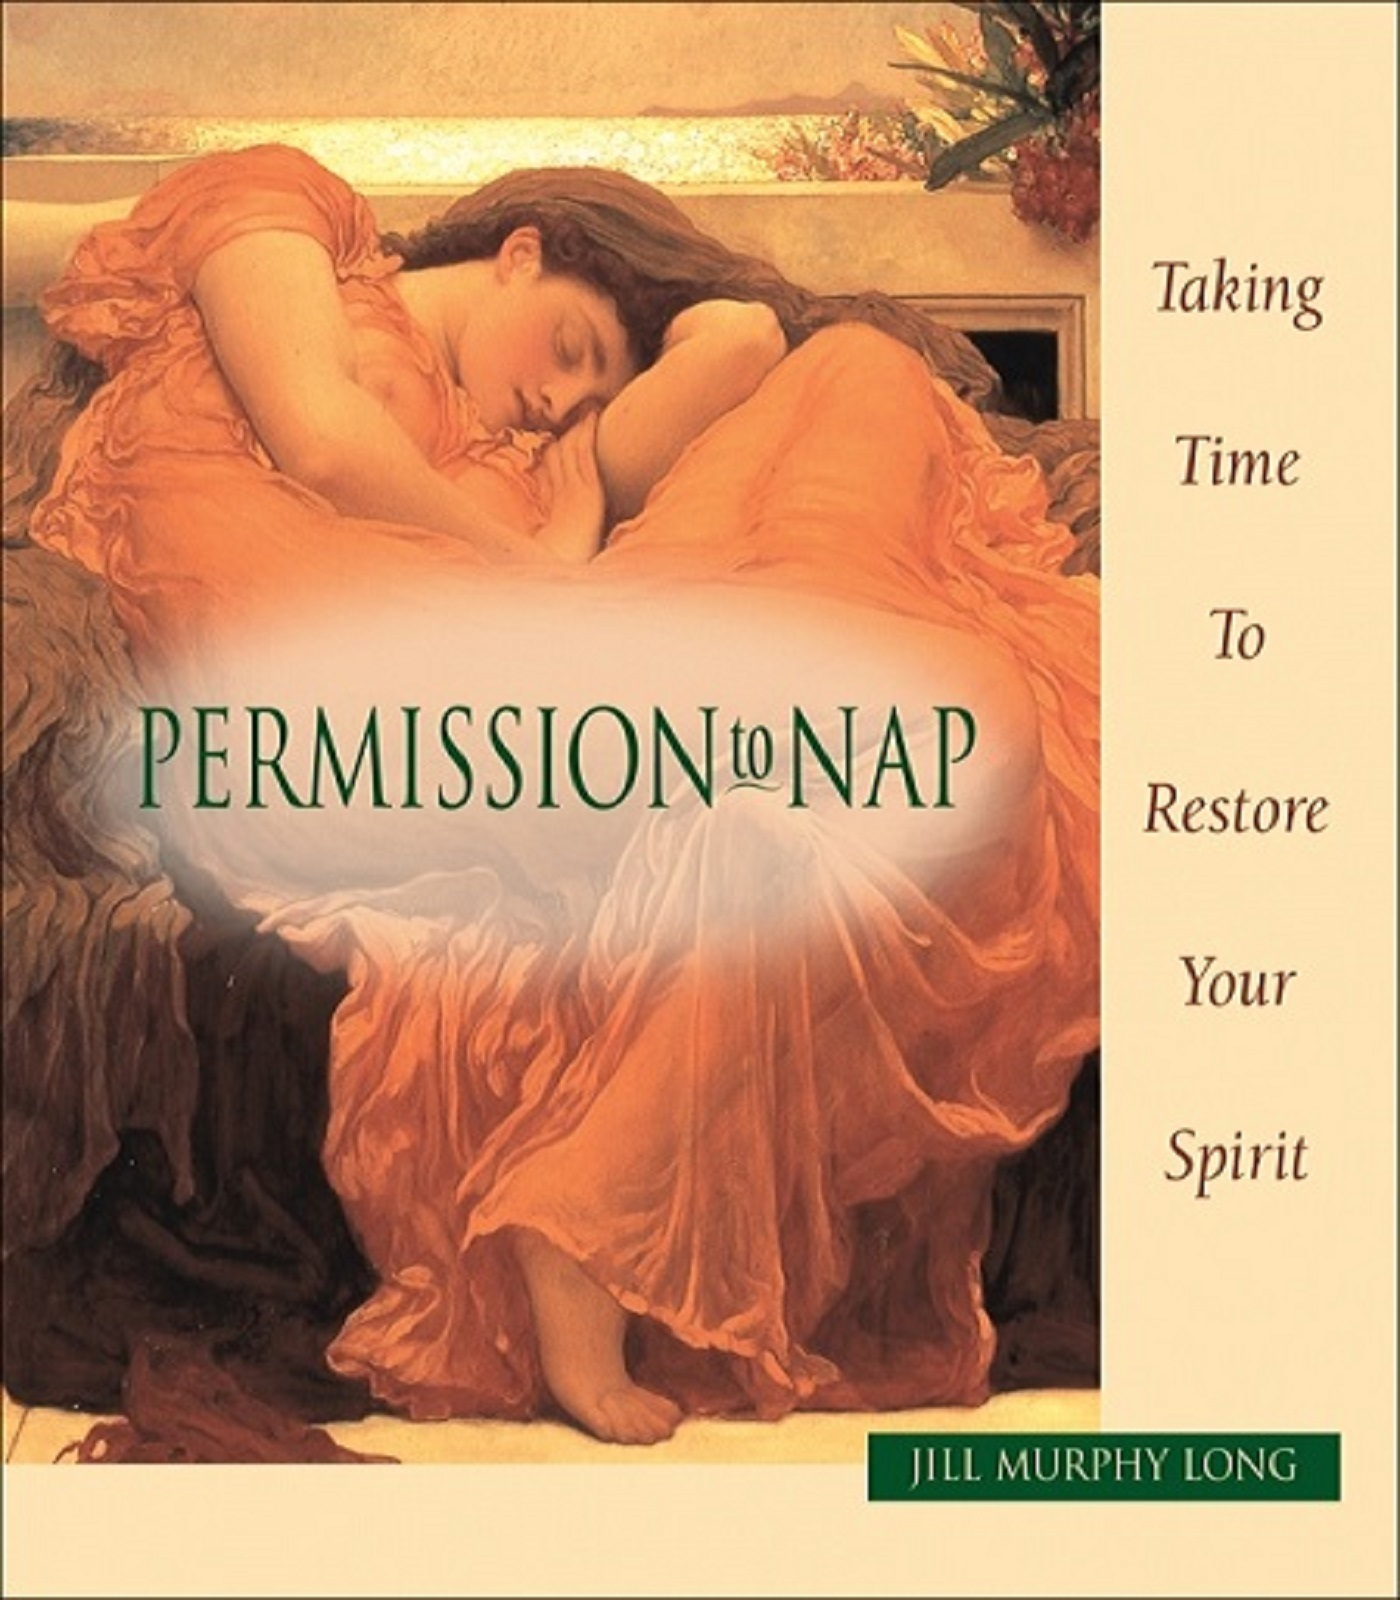 Permission to Nap, Taking Time to Restore Your Spirit